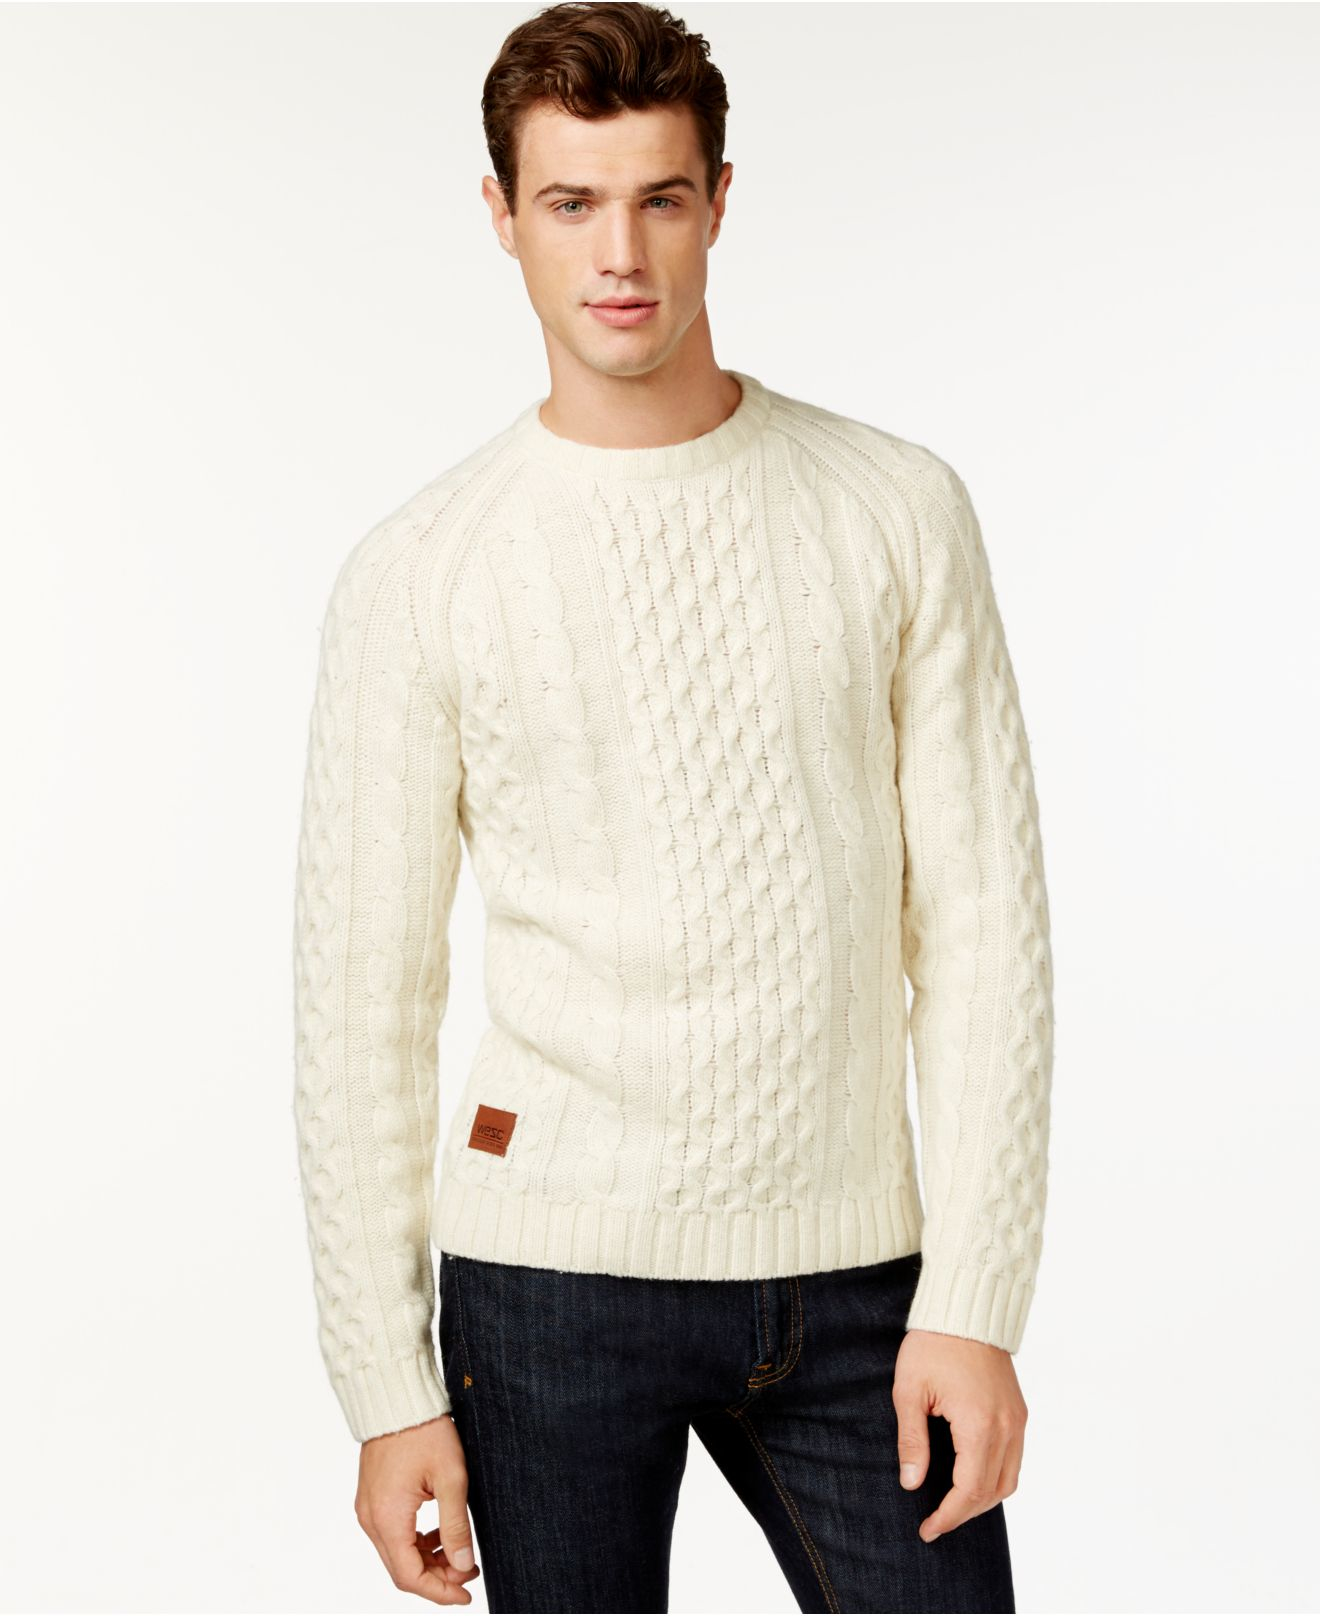 Wesc Cabe Cable-knit Sweater in Natural for Men | Lyst